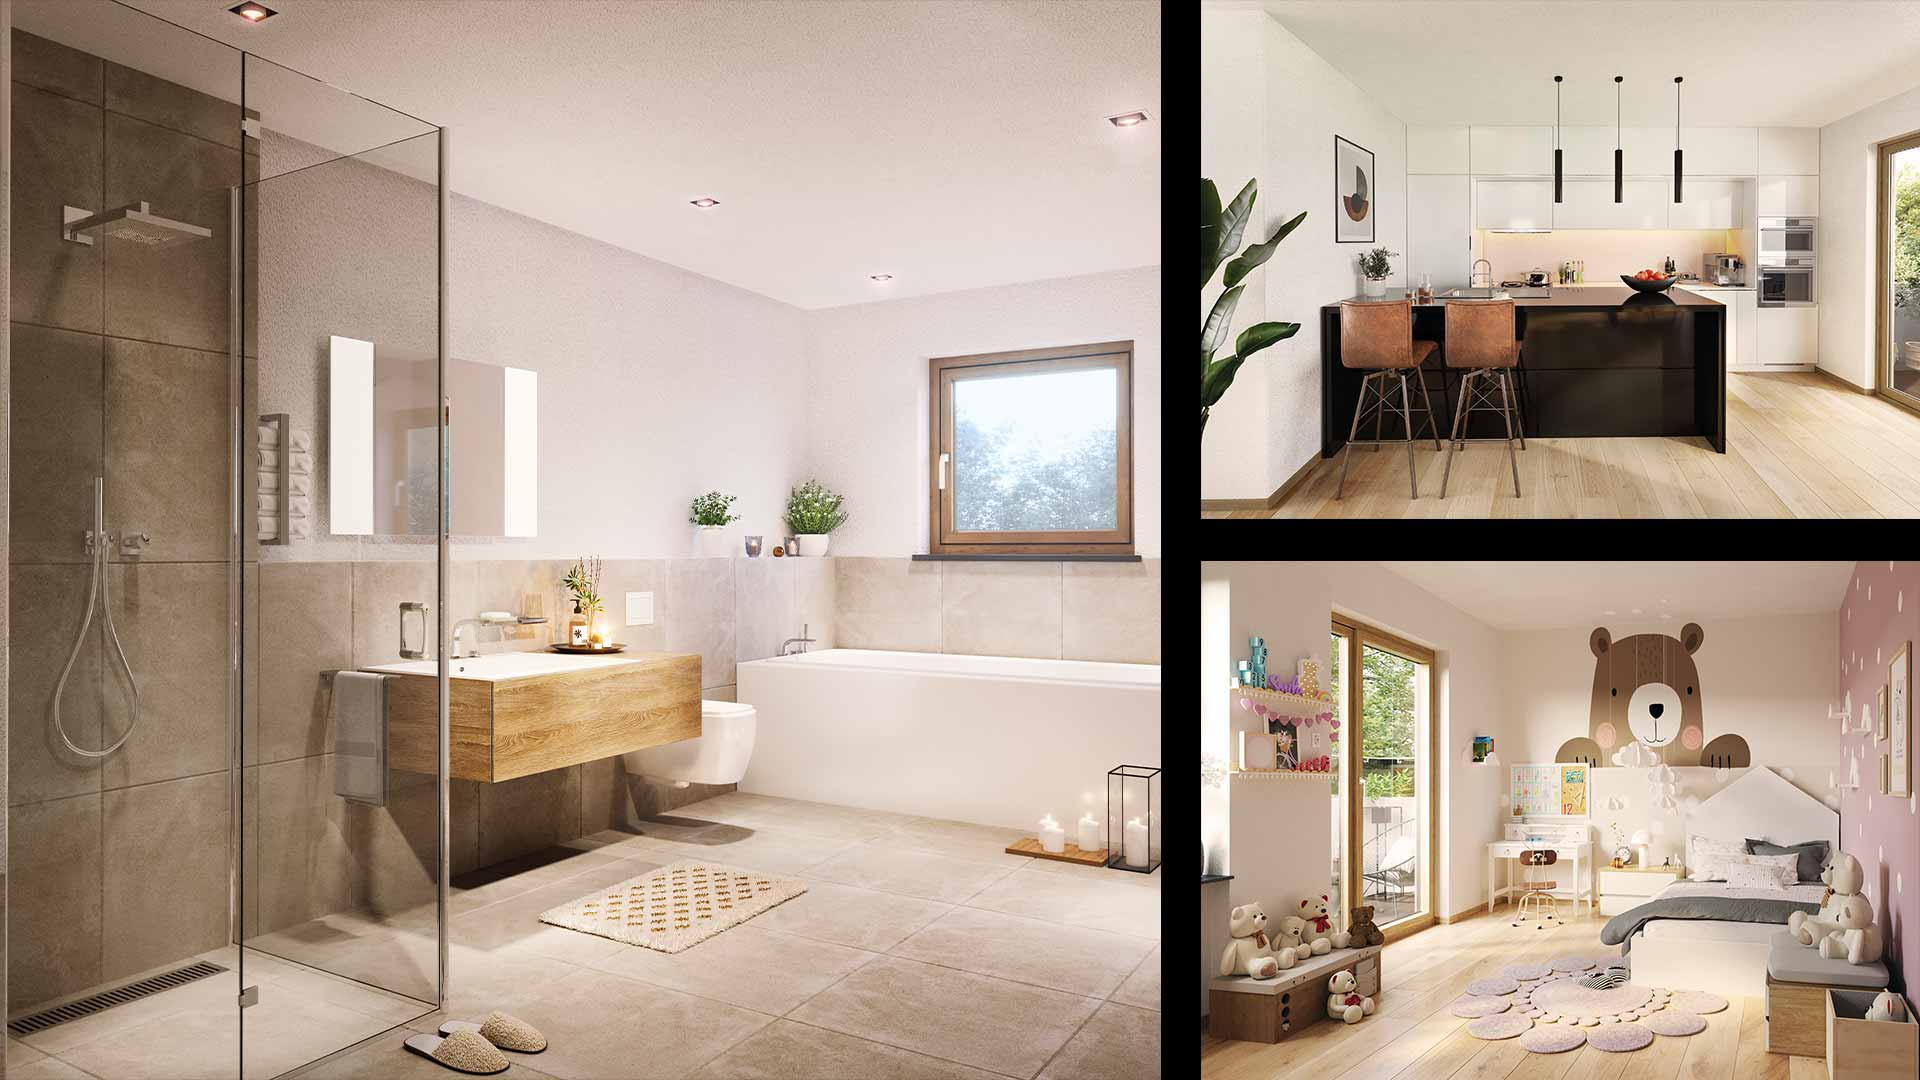 PARK-AVENUE_9_Raum_Visionen_Immobilien_marketing